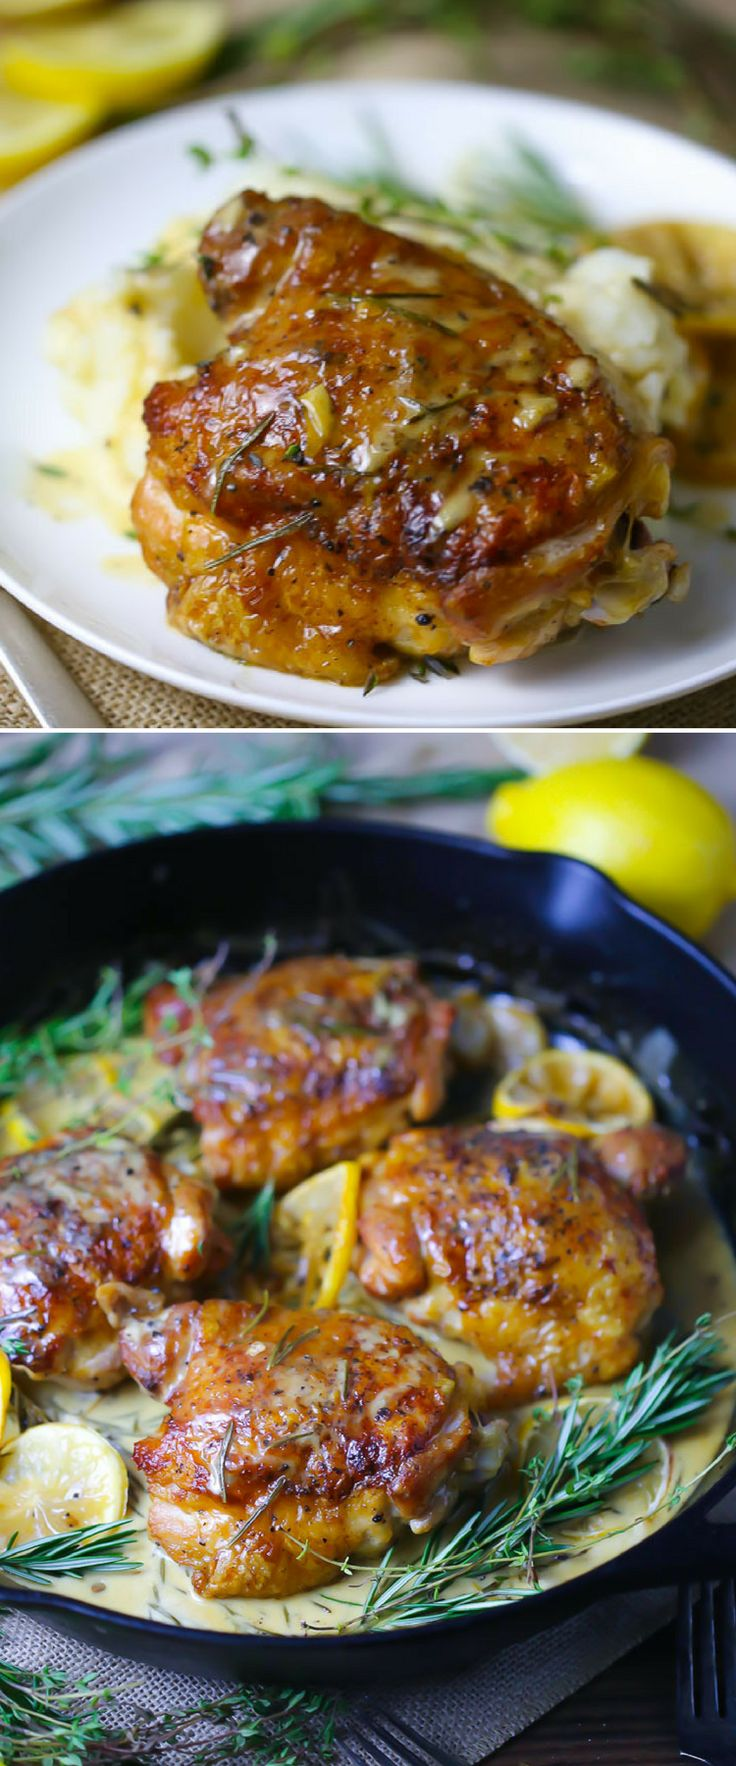 Garlic, herbs, cream, lemon juice and white wine make for a super creamy, DELICIOUS sauce for these easy oven roasted chicken thighs.